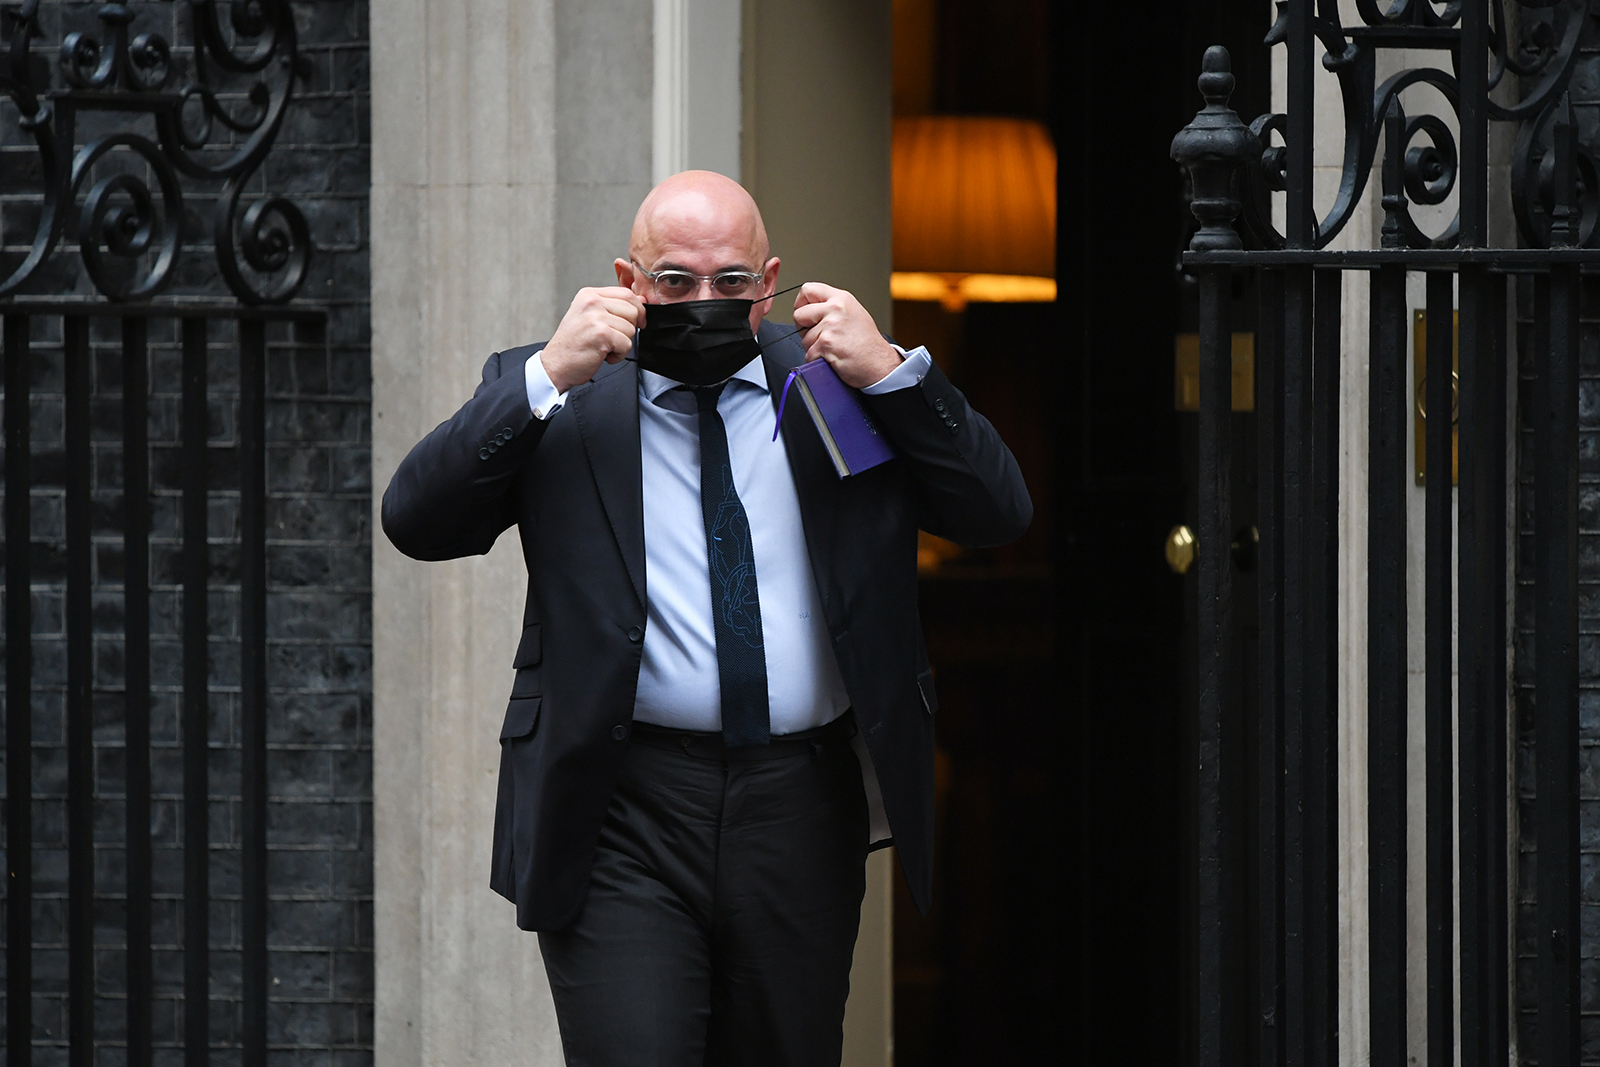 Minister for Covid-19 Vaccine Deployment Nadhim Zahawi leaves 10 Downing Street as the UK enters its third lockdown on January 5 in London.